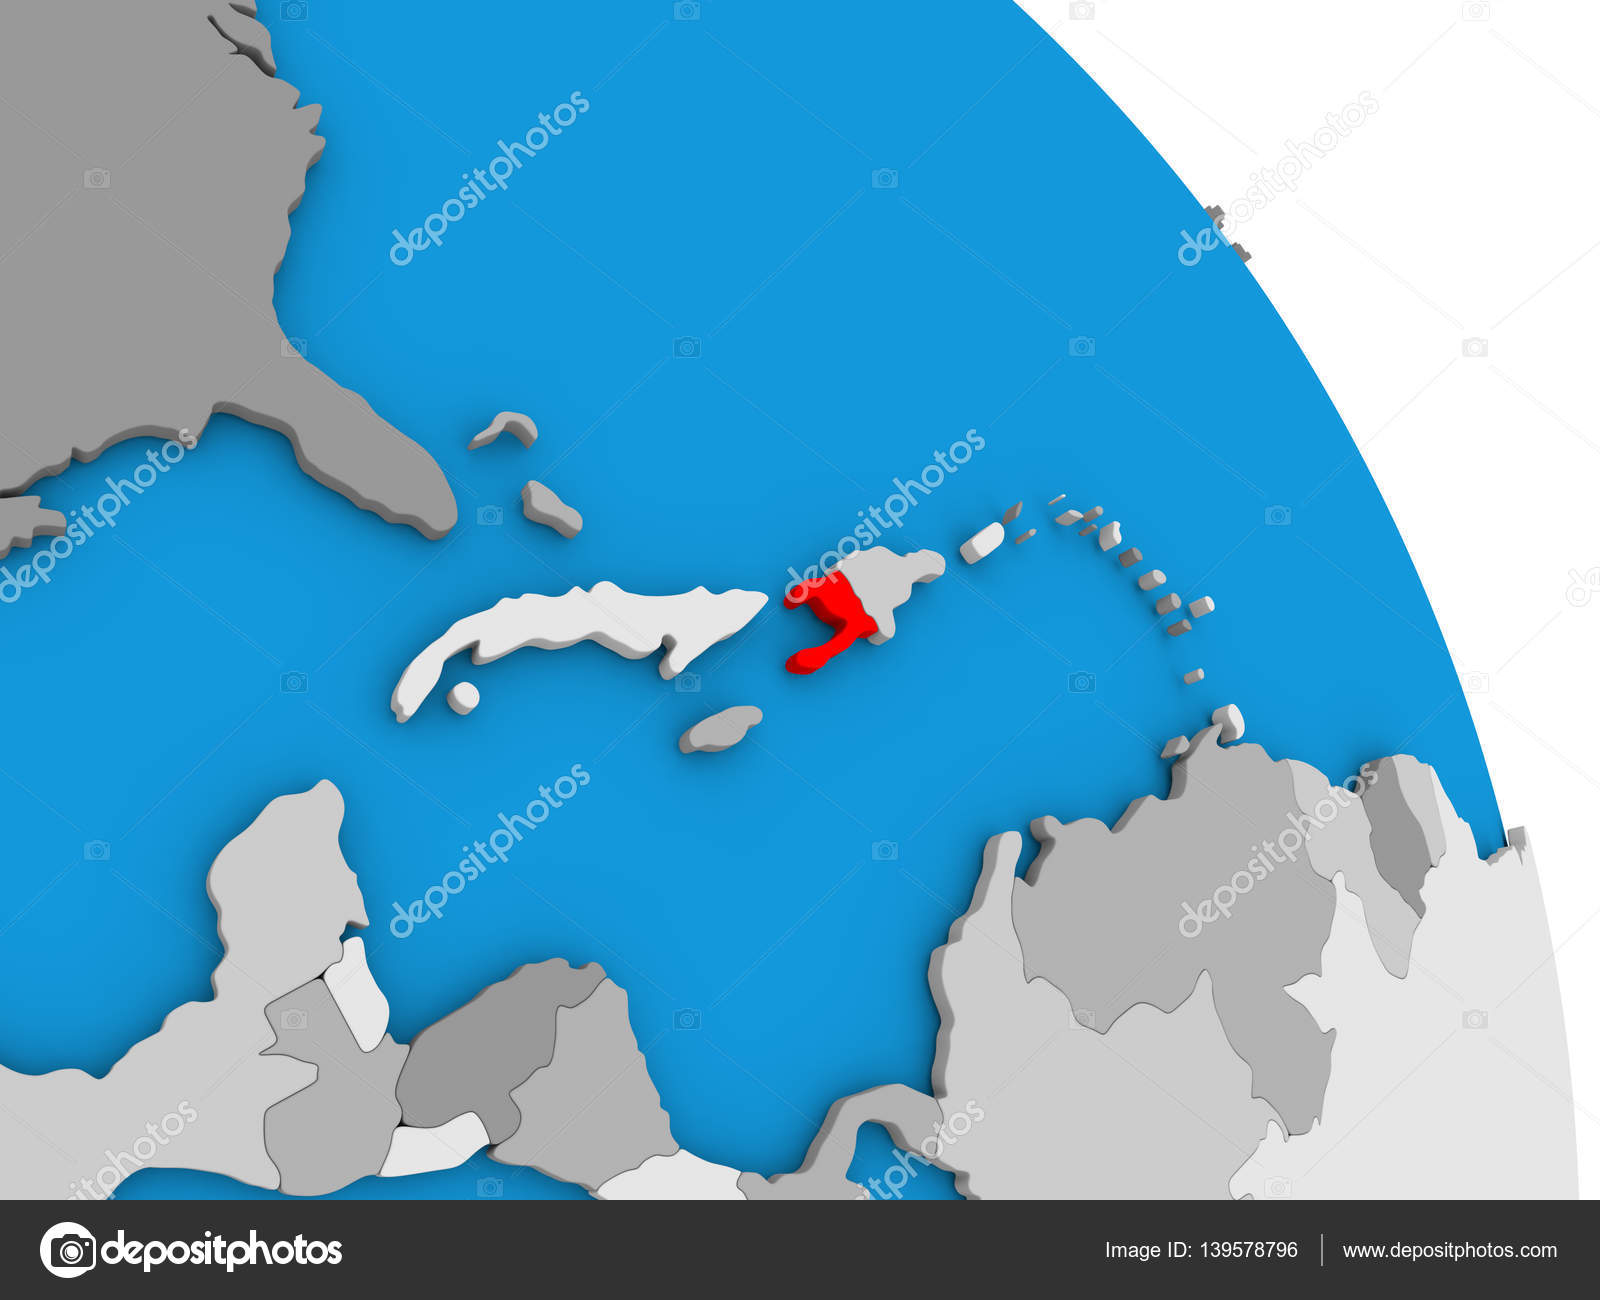 Haiti on globe stock photo tomiger 139578796 haiti highlighted in red on simple globe with visible country borders 3d illustration photo by tomiger gumiabroncs Images